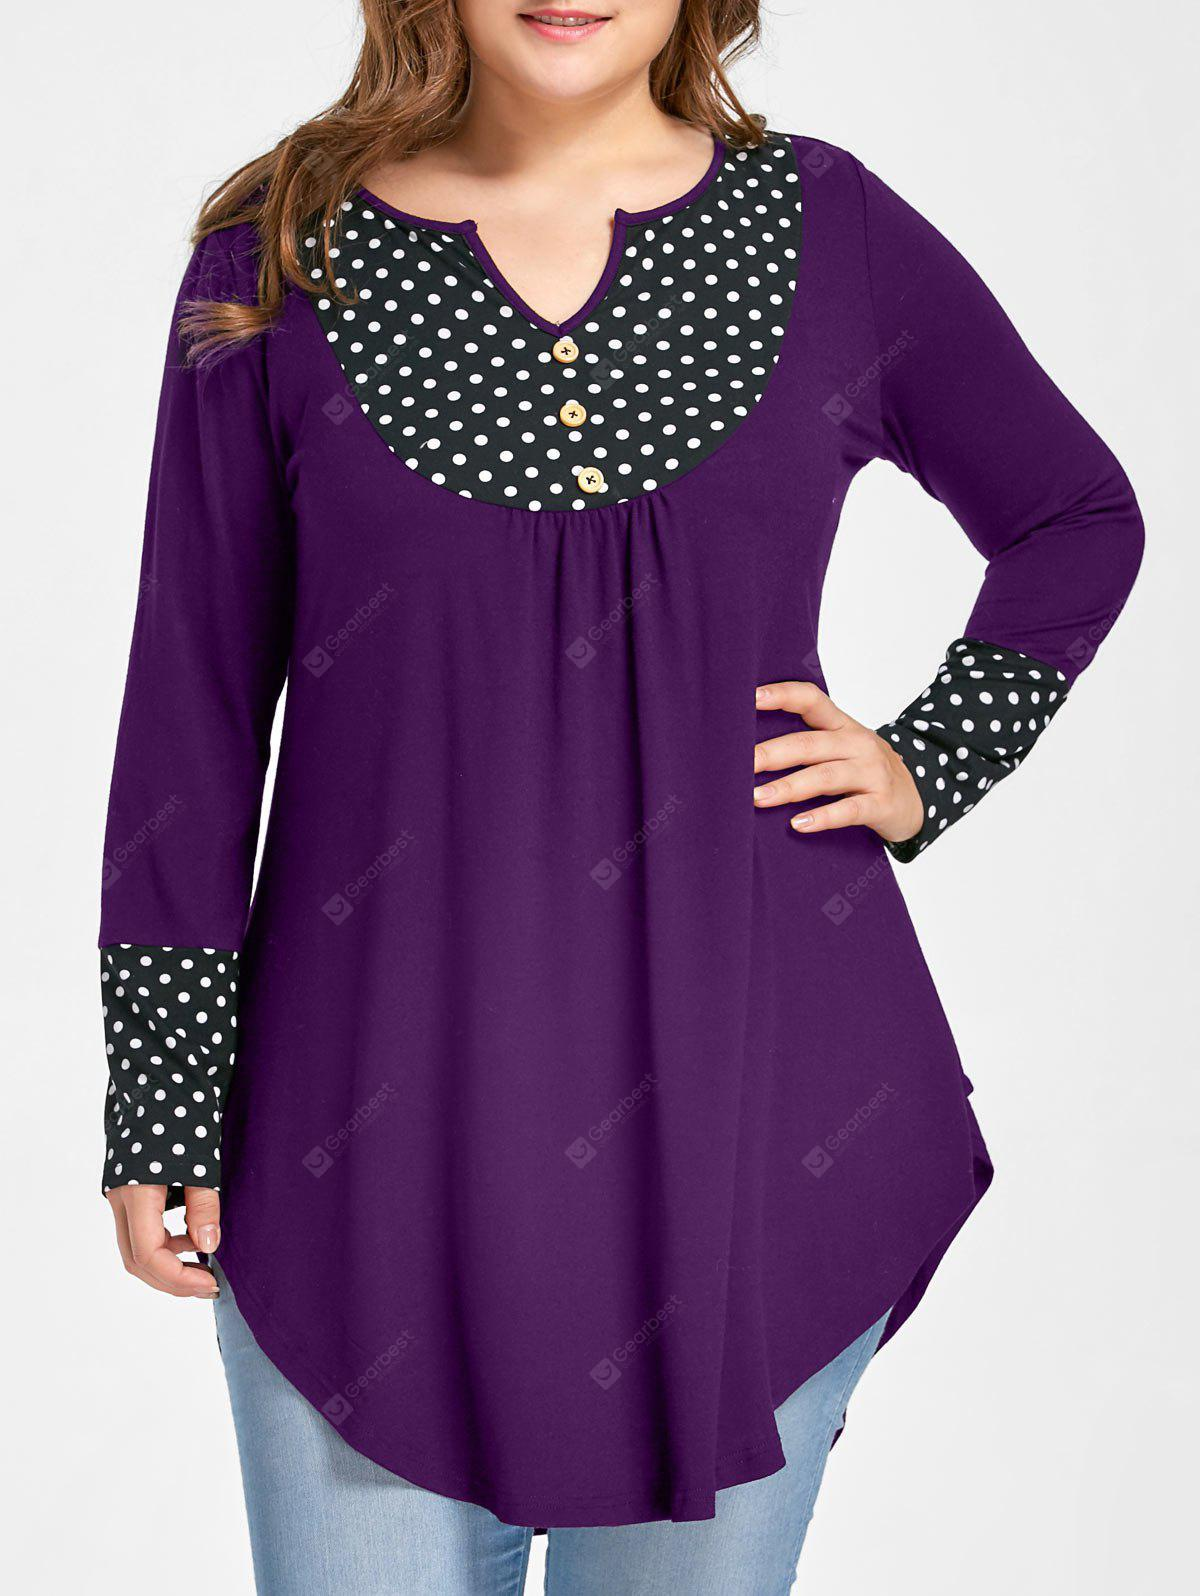 Plus Size Polka Dot Curved Tunic Top